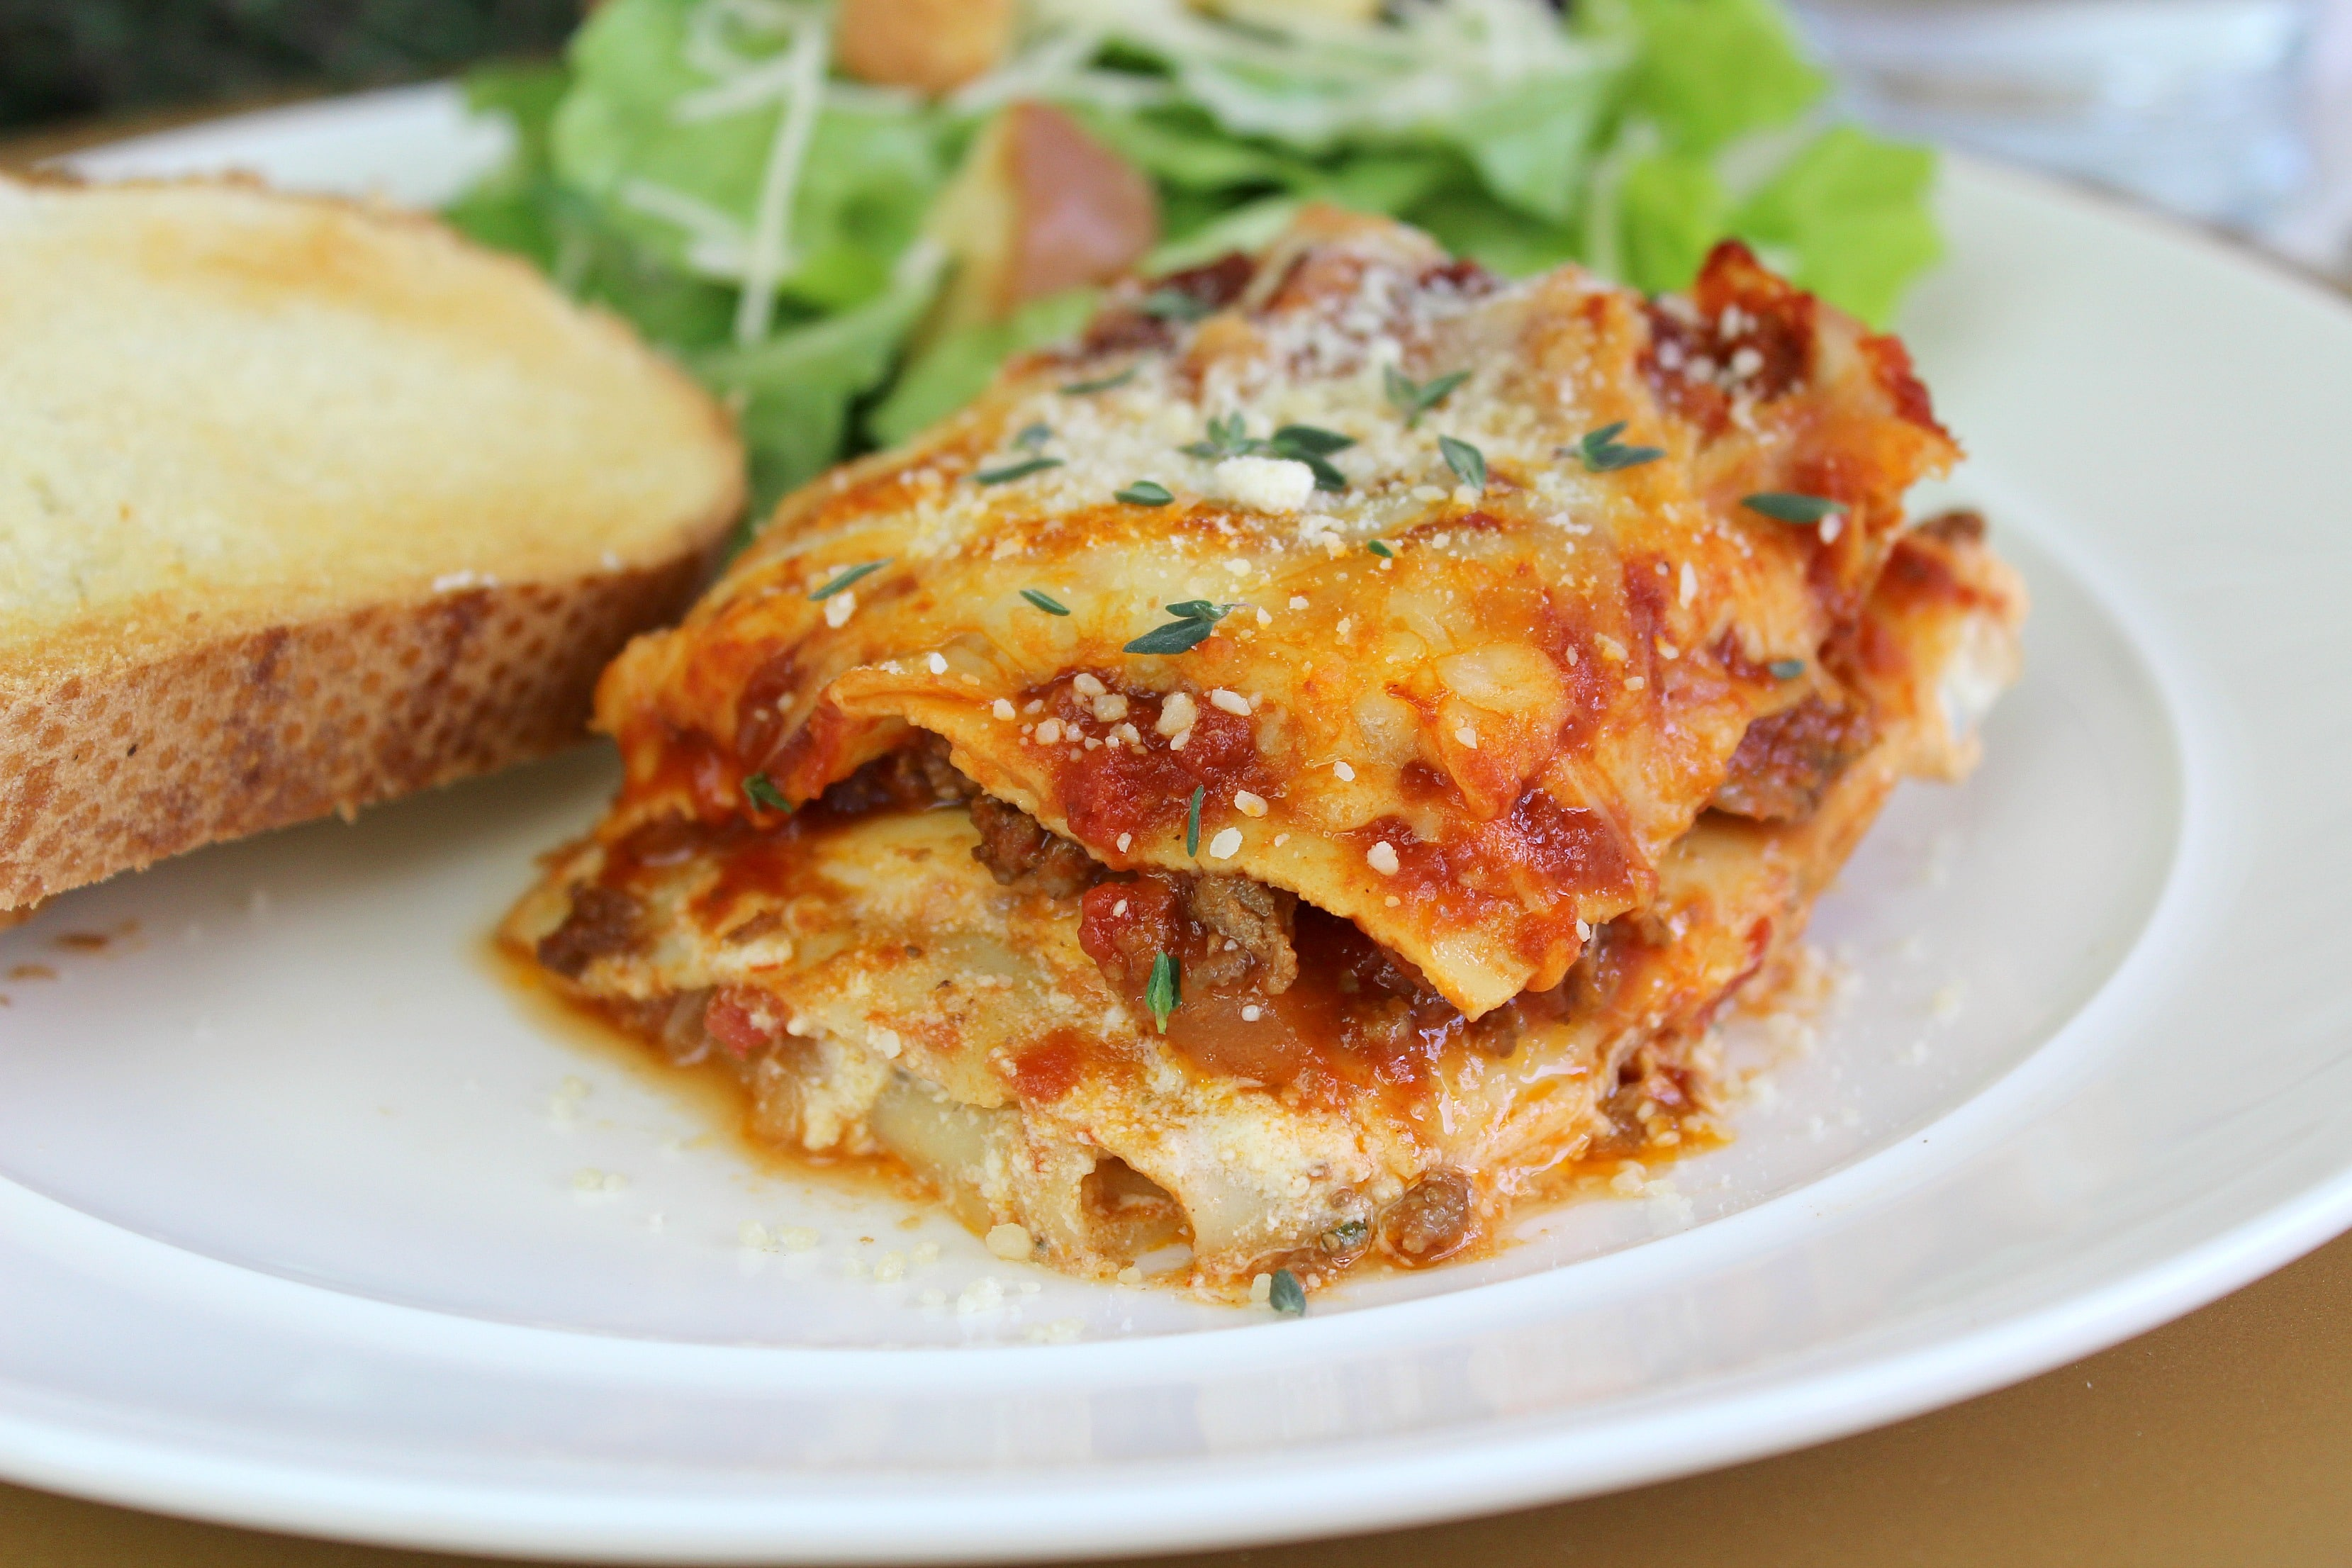 Enjoy a plate of this easy vegetarian lasagna with a side of crusty garlic bread and a green salad.